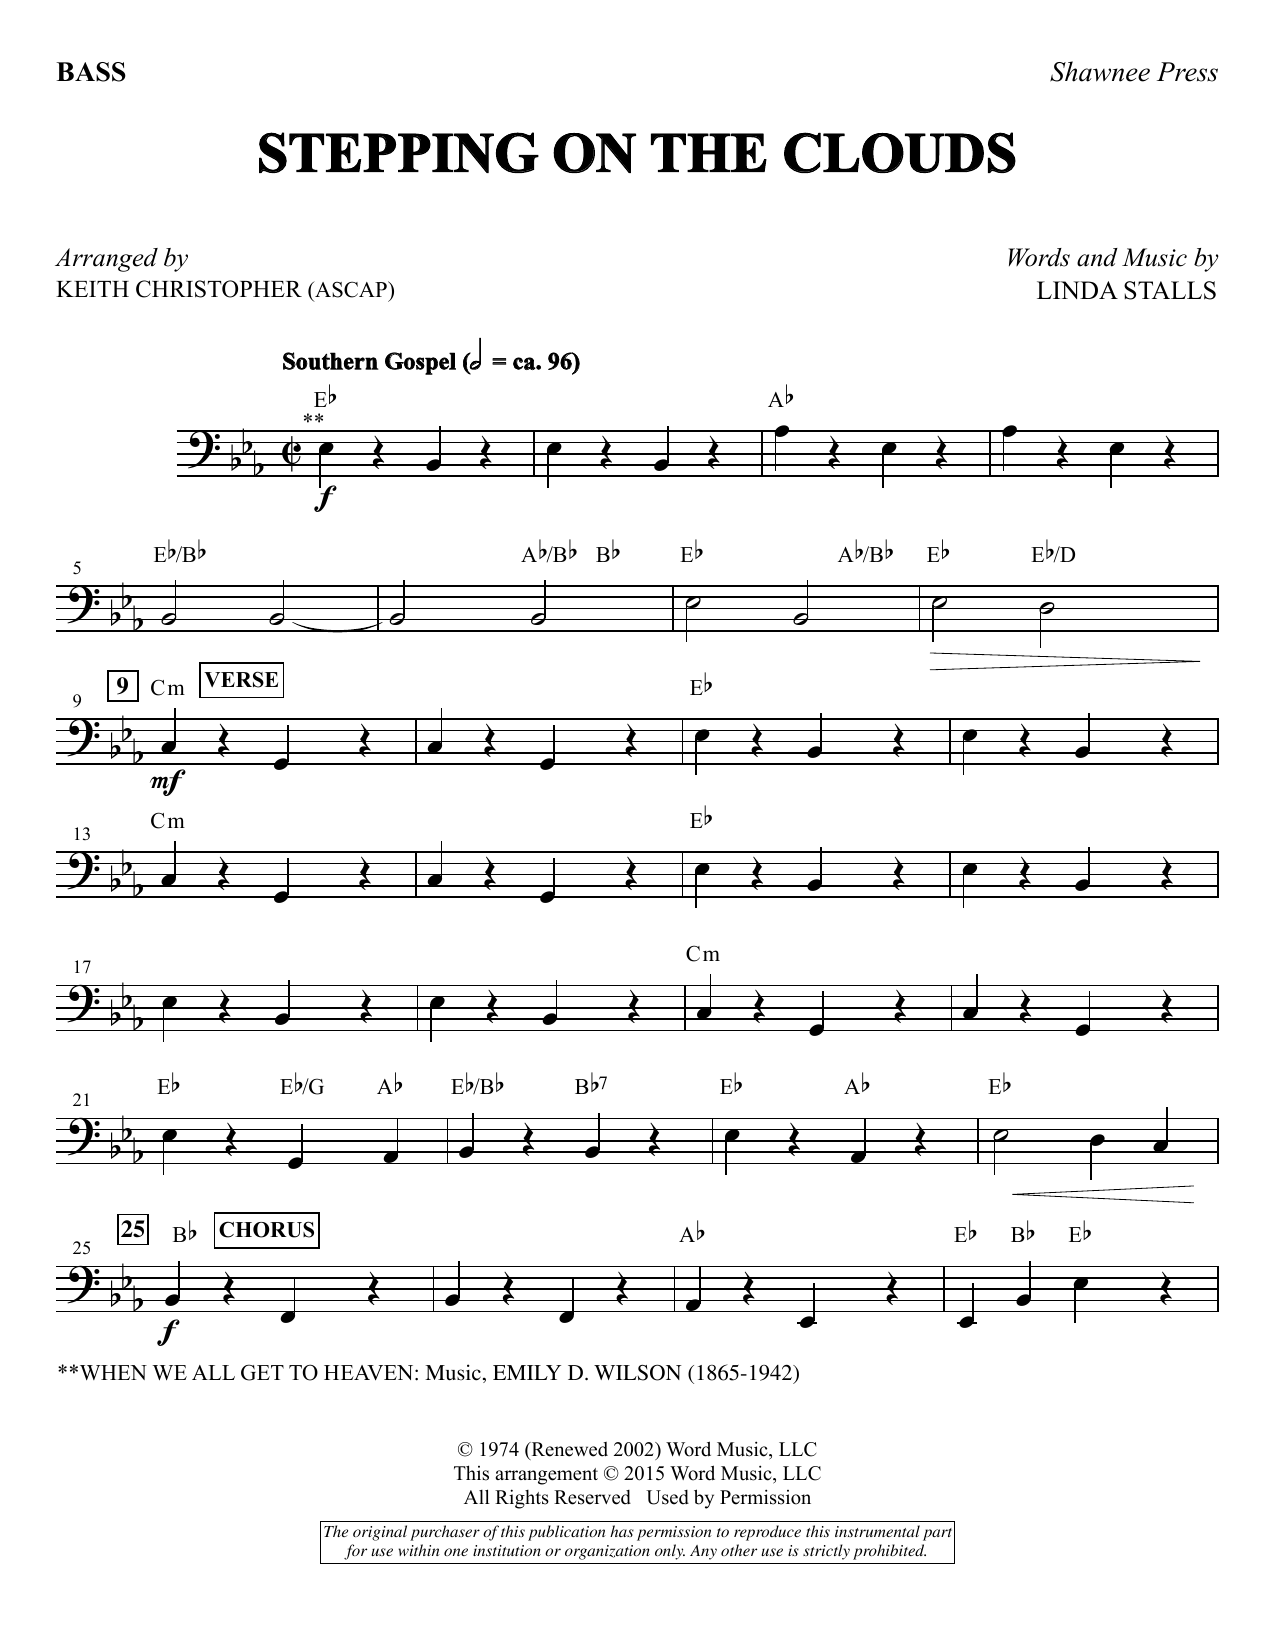 Stepping on the Clouds - Bass sheet music